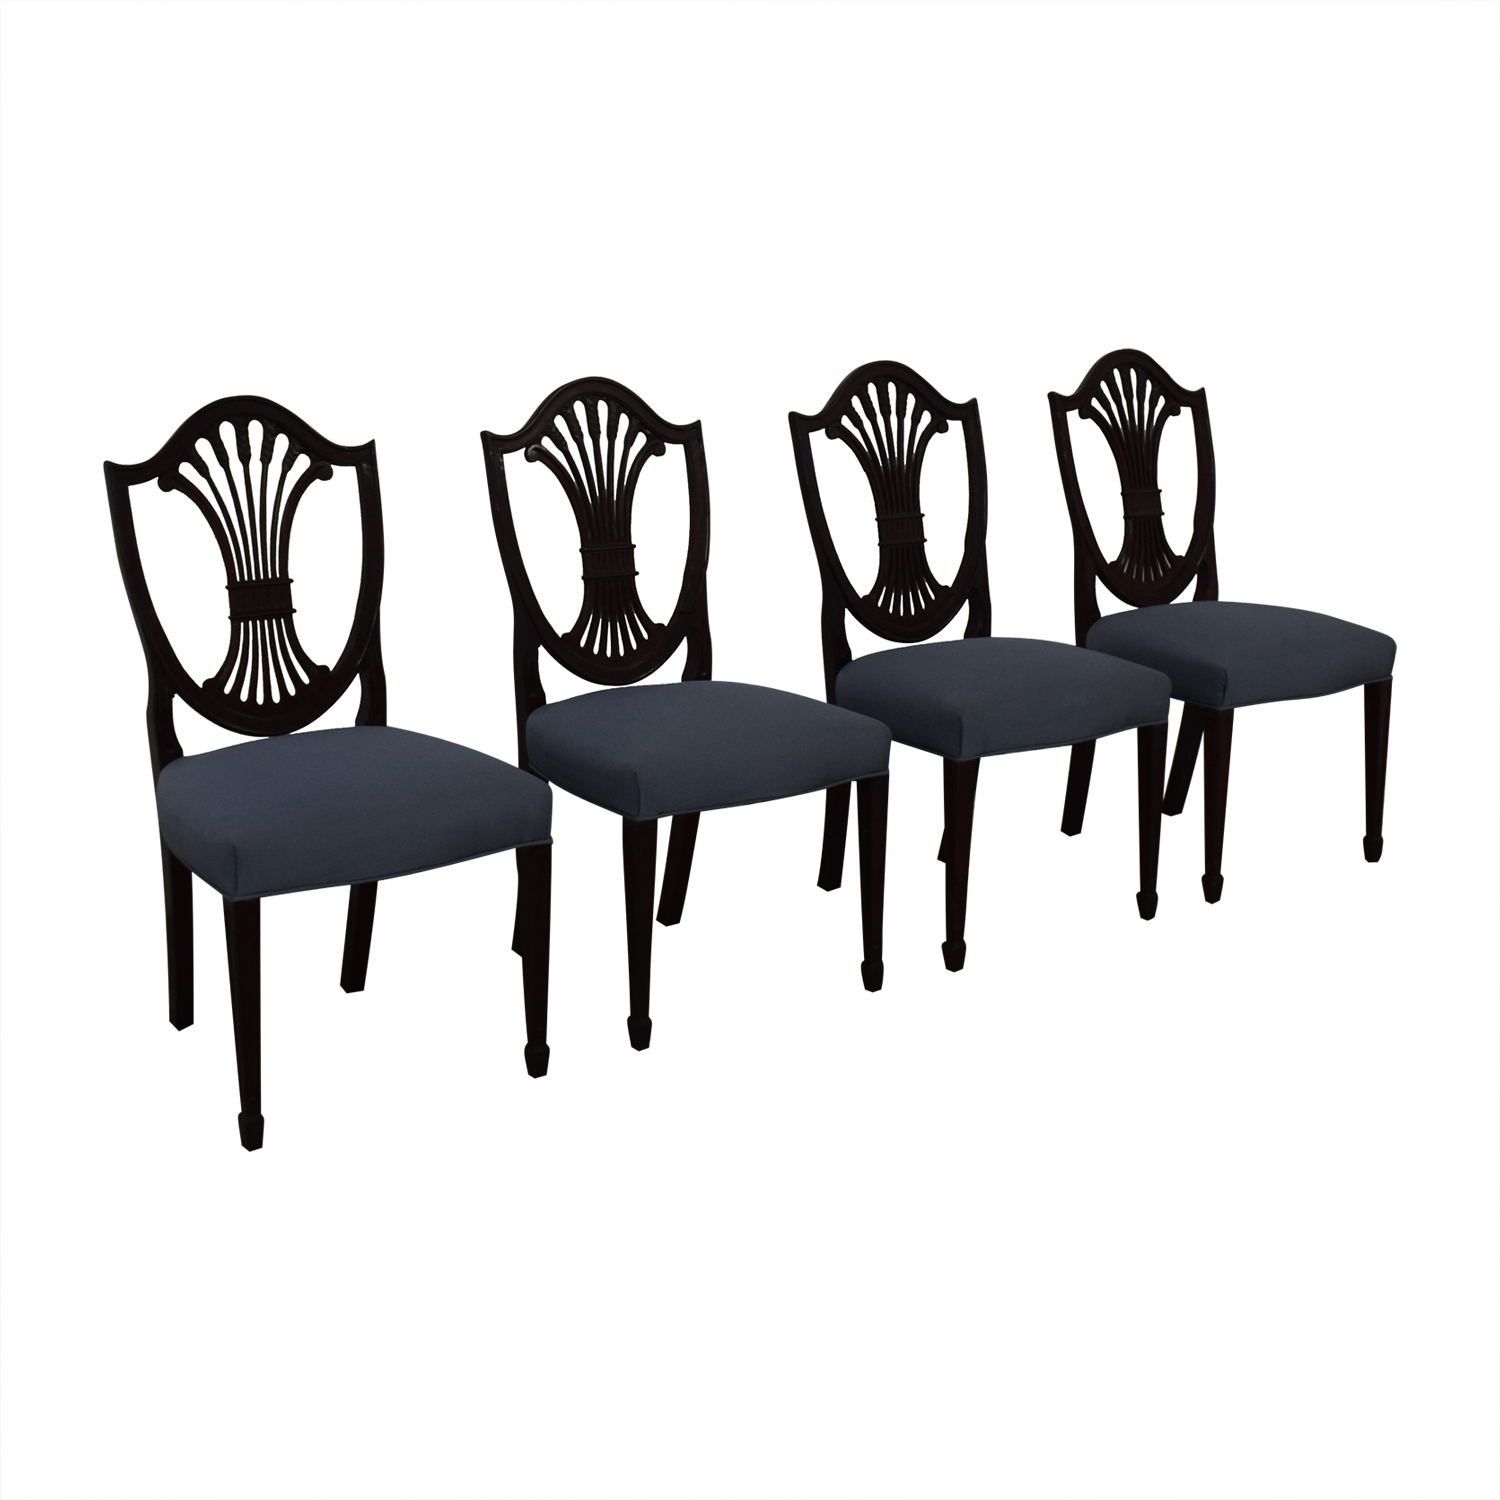 Stickley Furniture Stickley Furniture Monroe Place Side Chairs Chairs